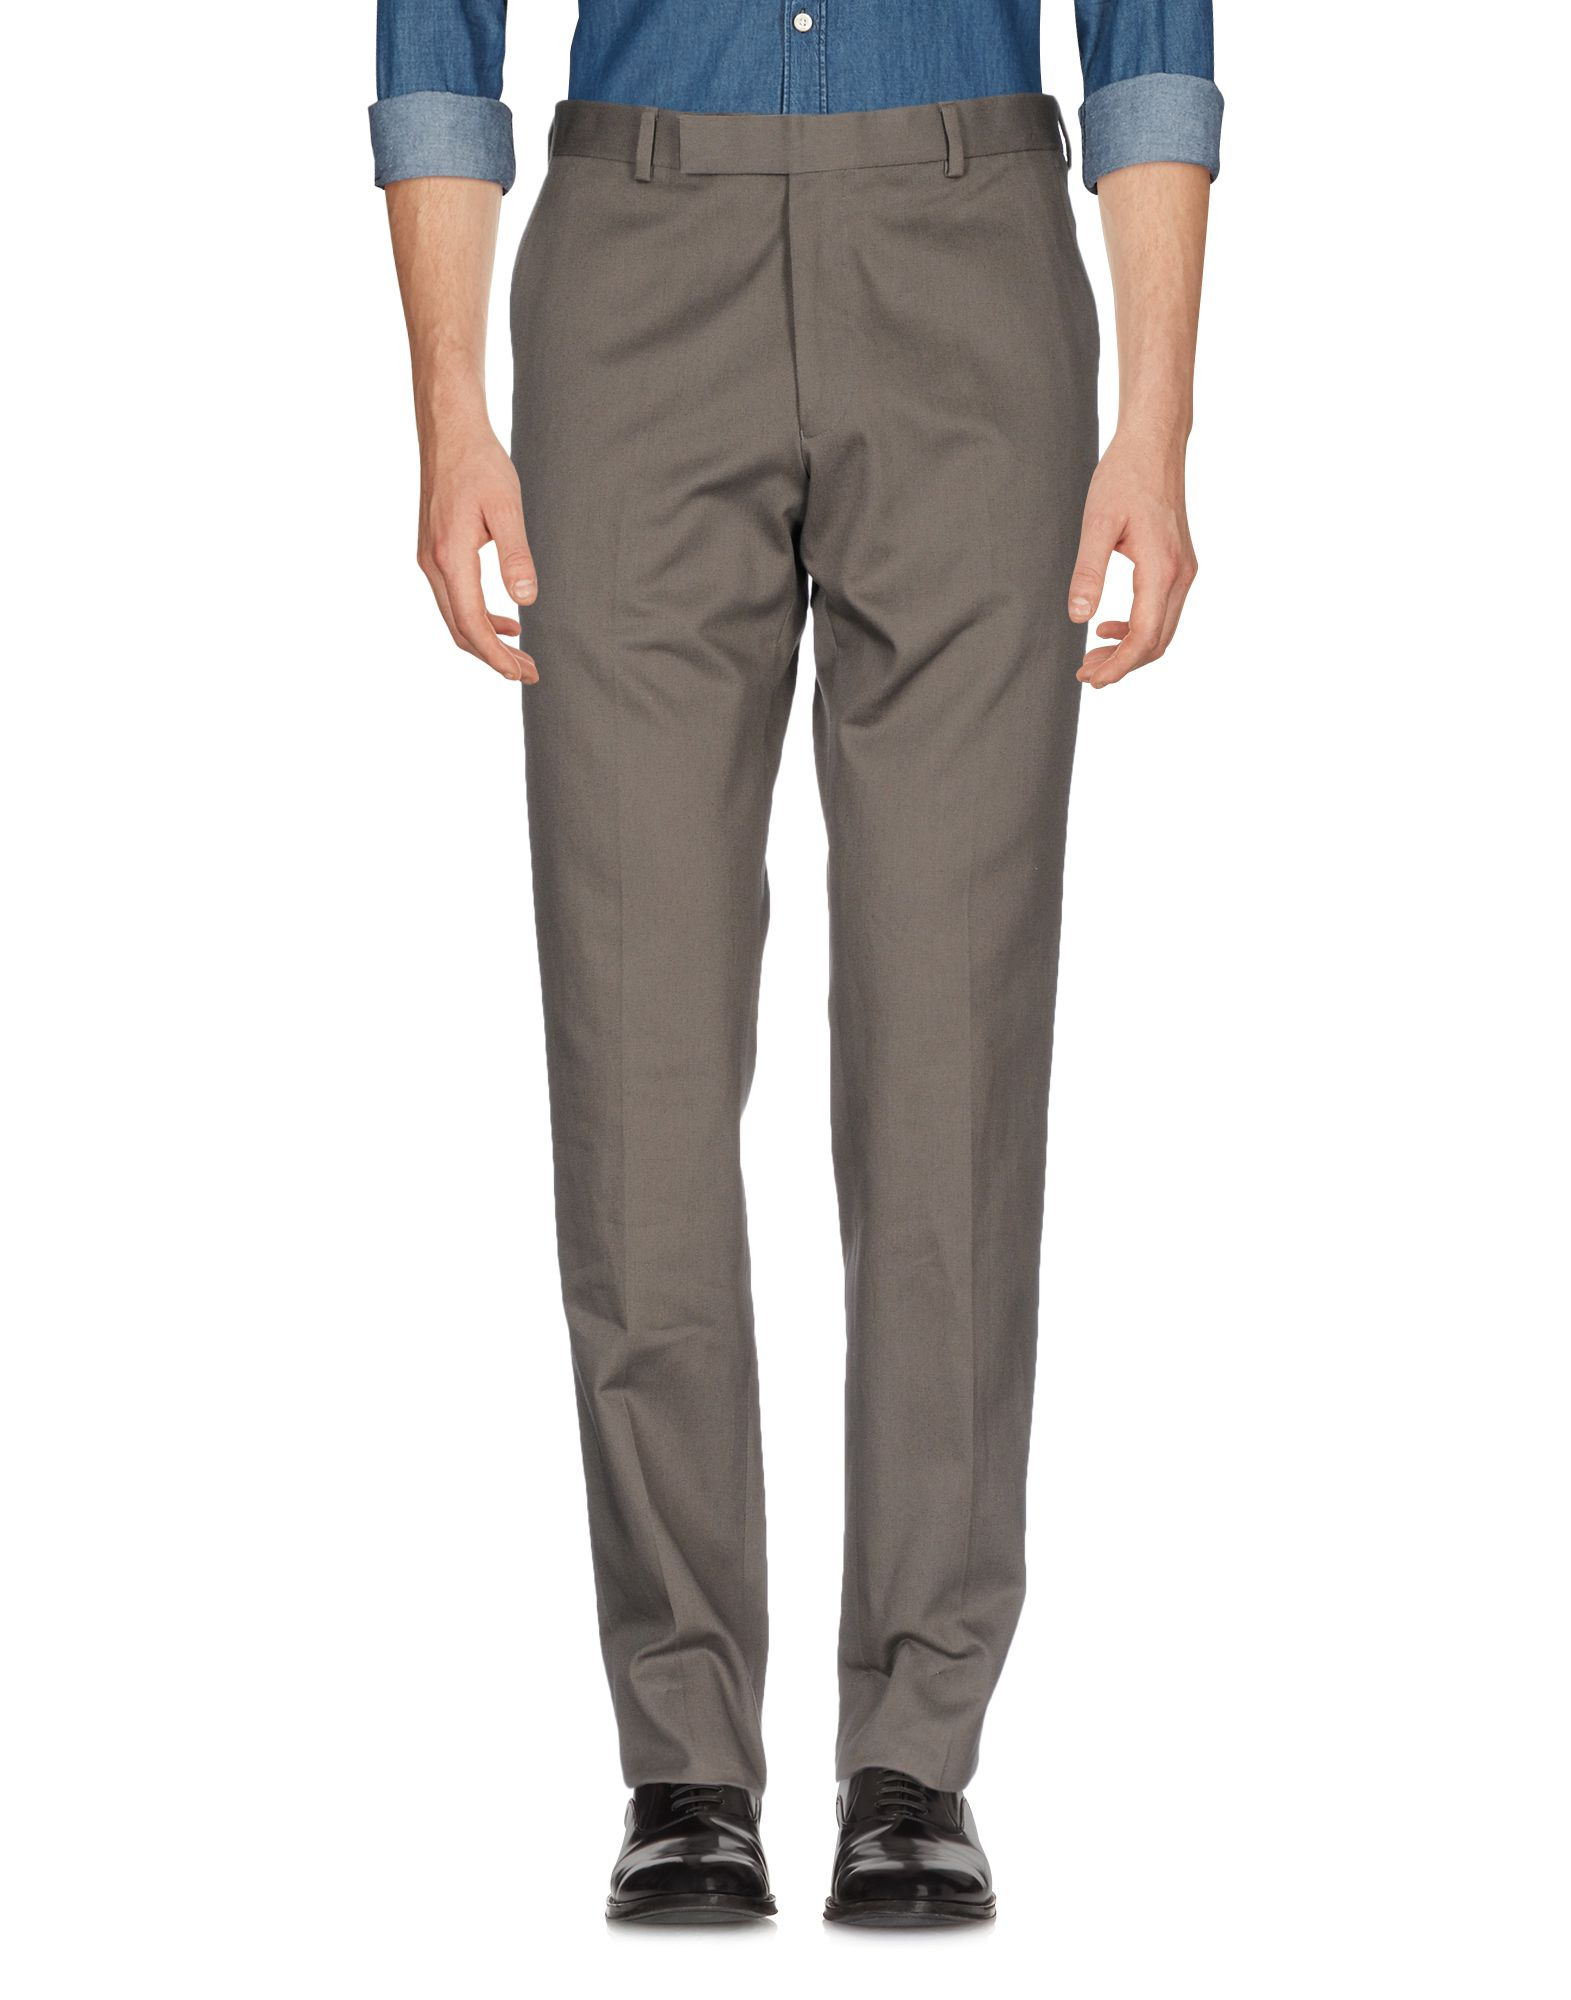 Chinos Richard James Uomo - Acquista online su